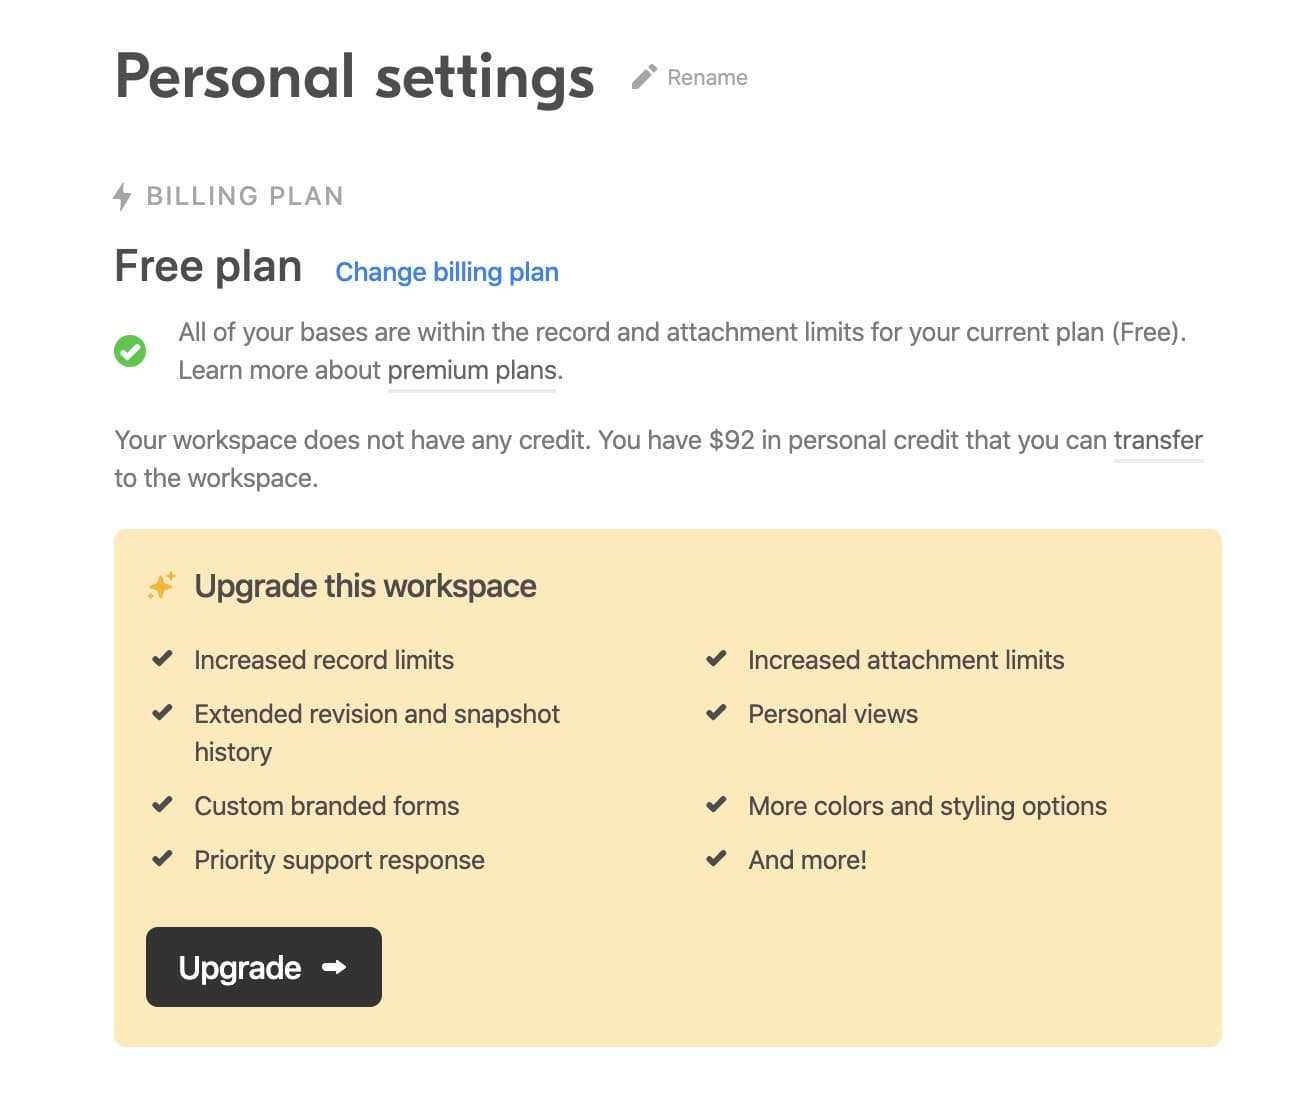 Workspace settings with a large call to action